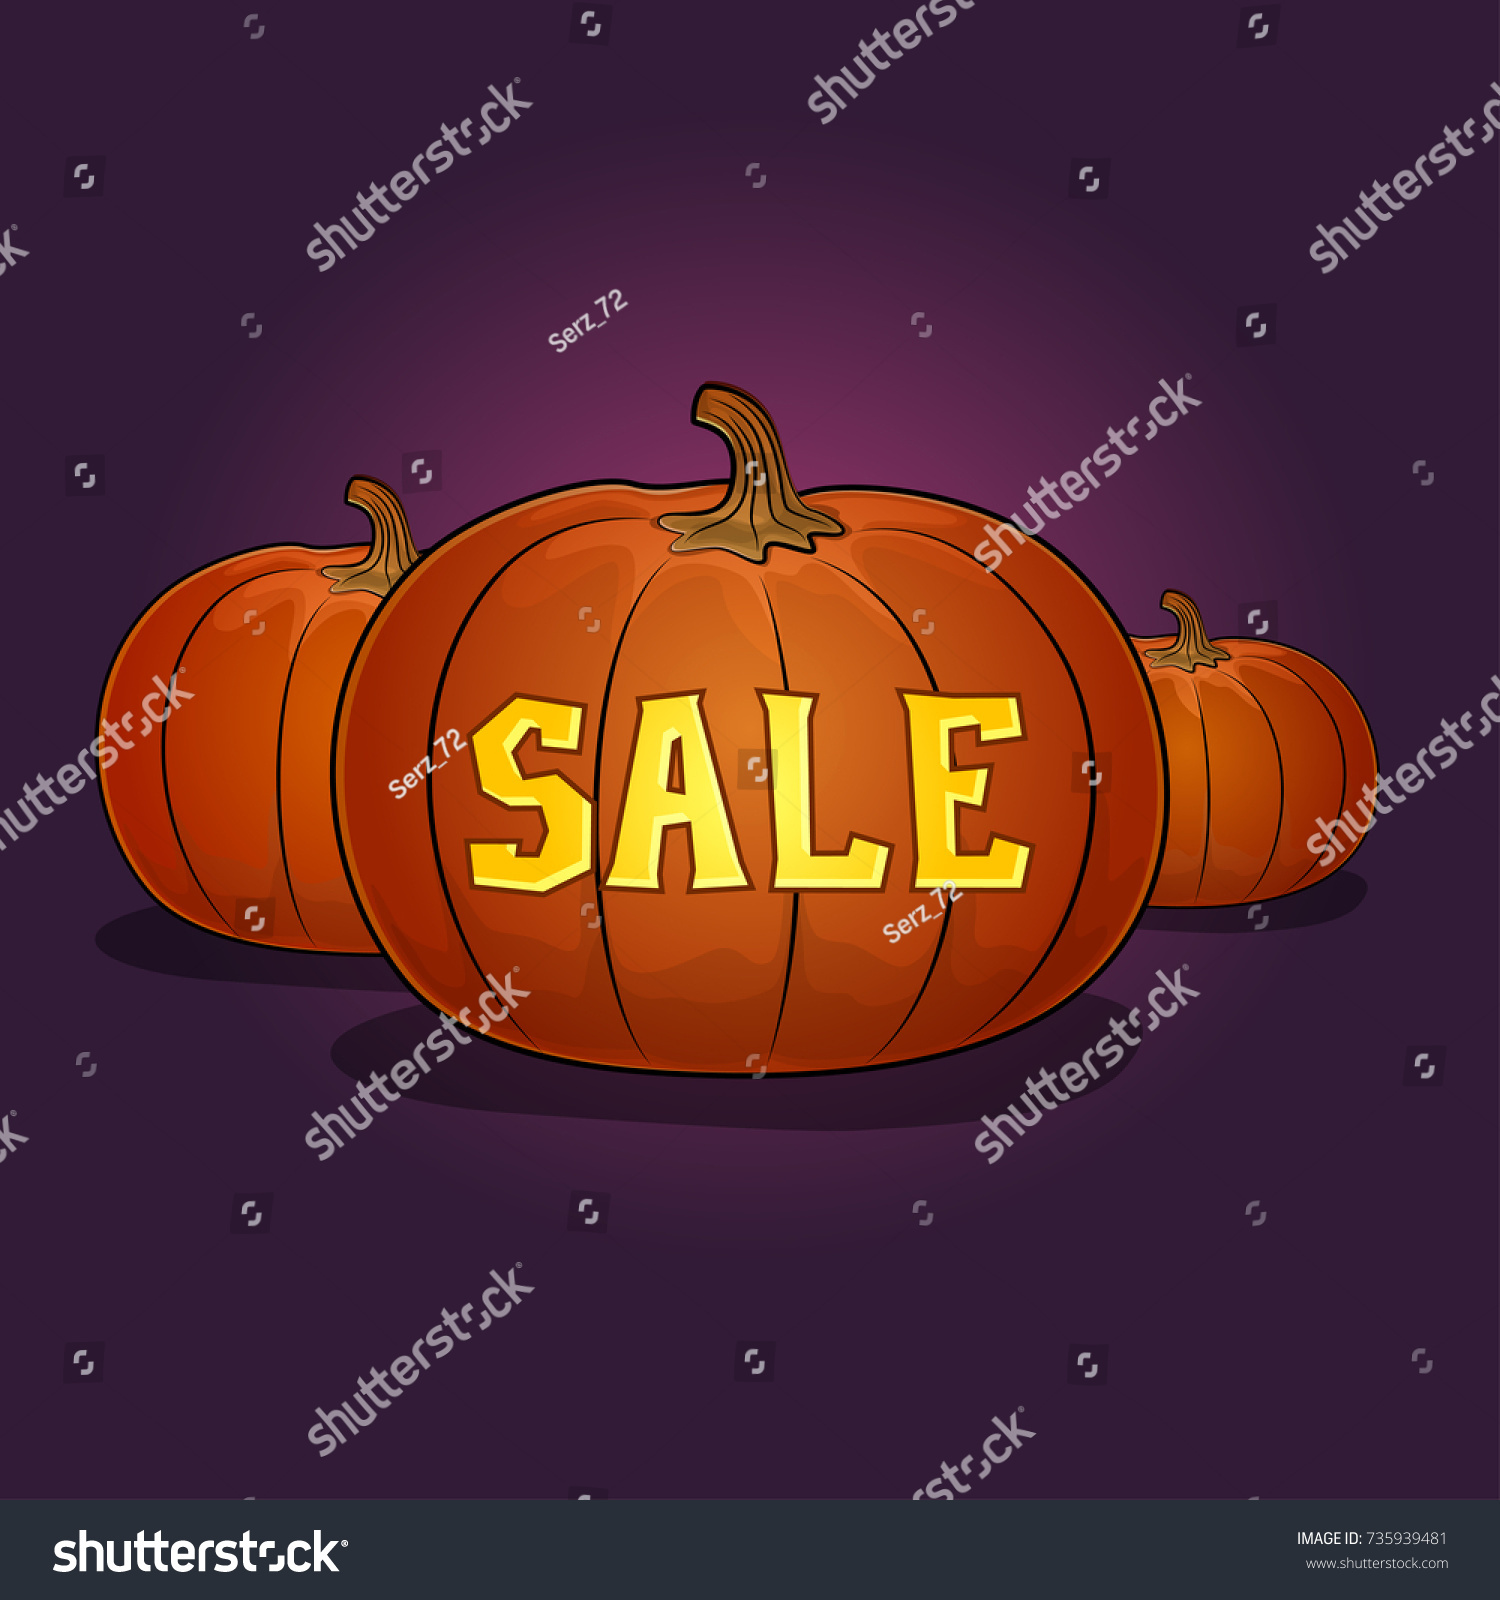 halloween sale poster pumpkins discounts holiday stock illustration